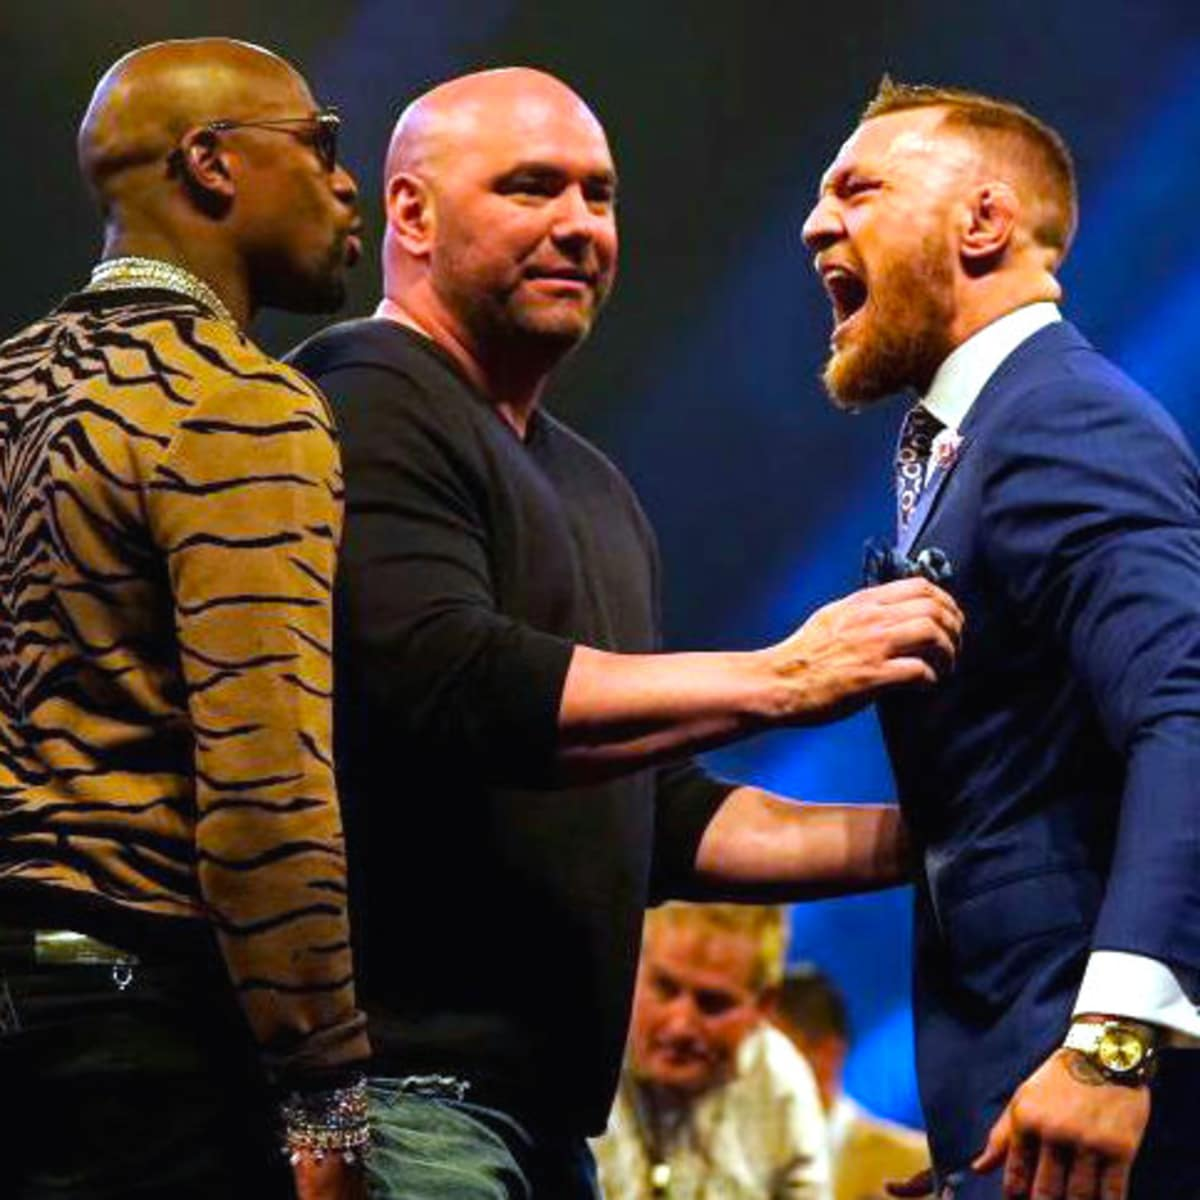 Houston, Floyd Mayweather and Conor McGregor, August 2017